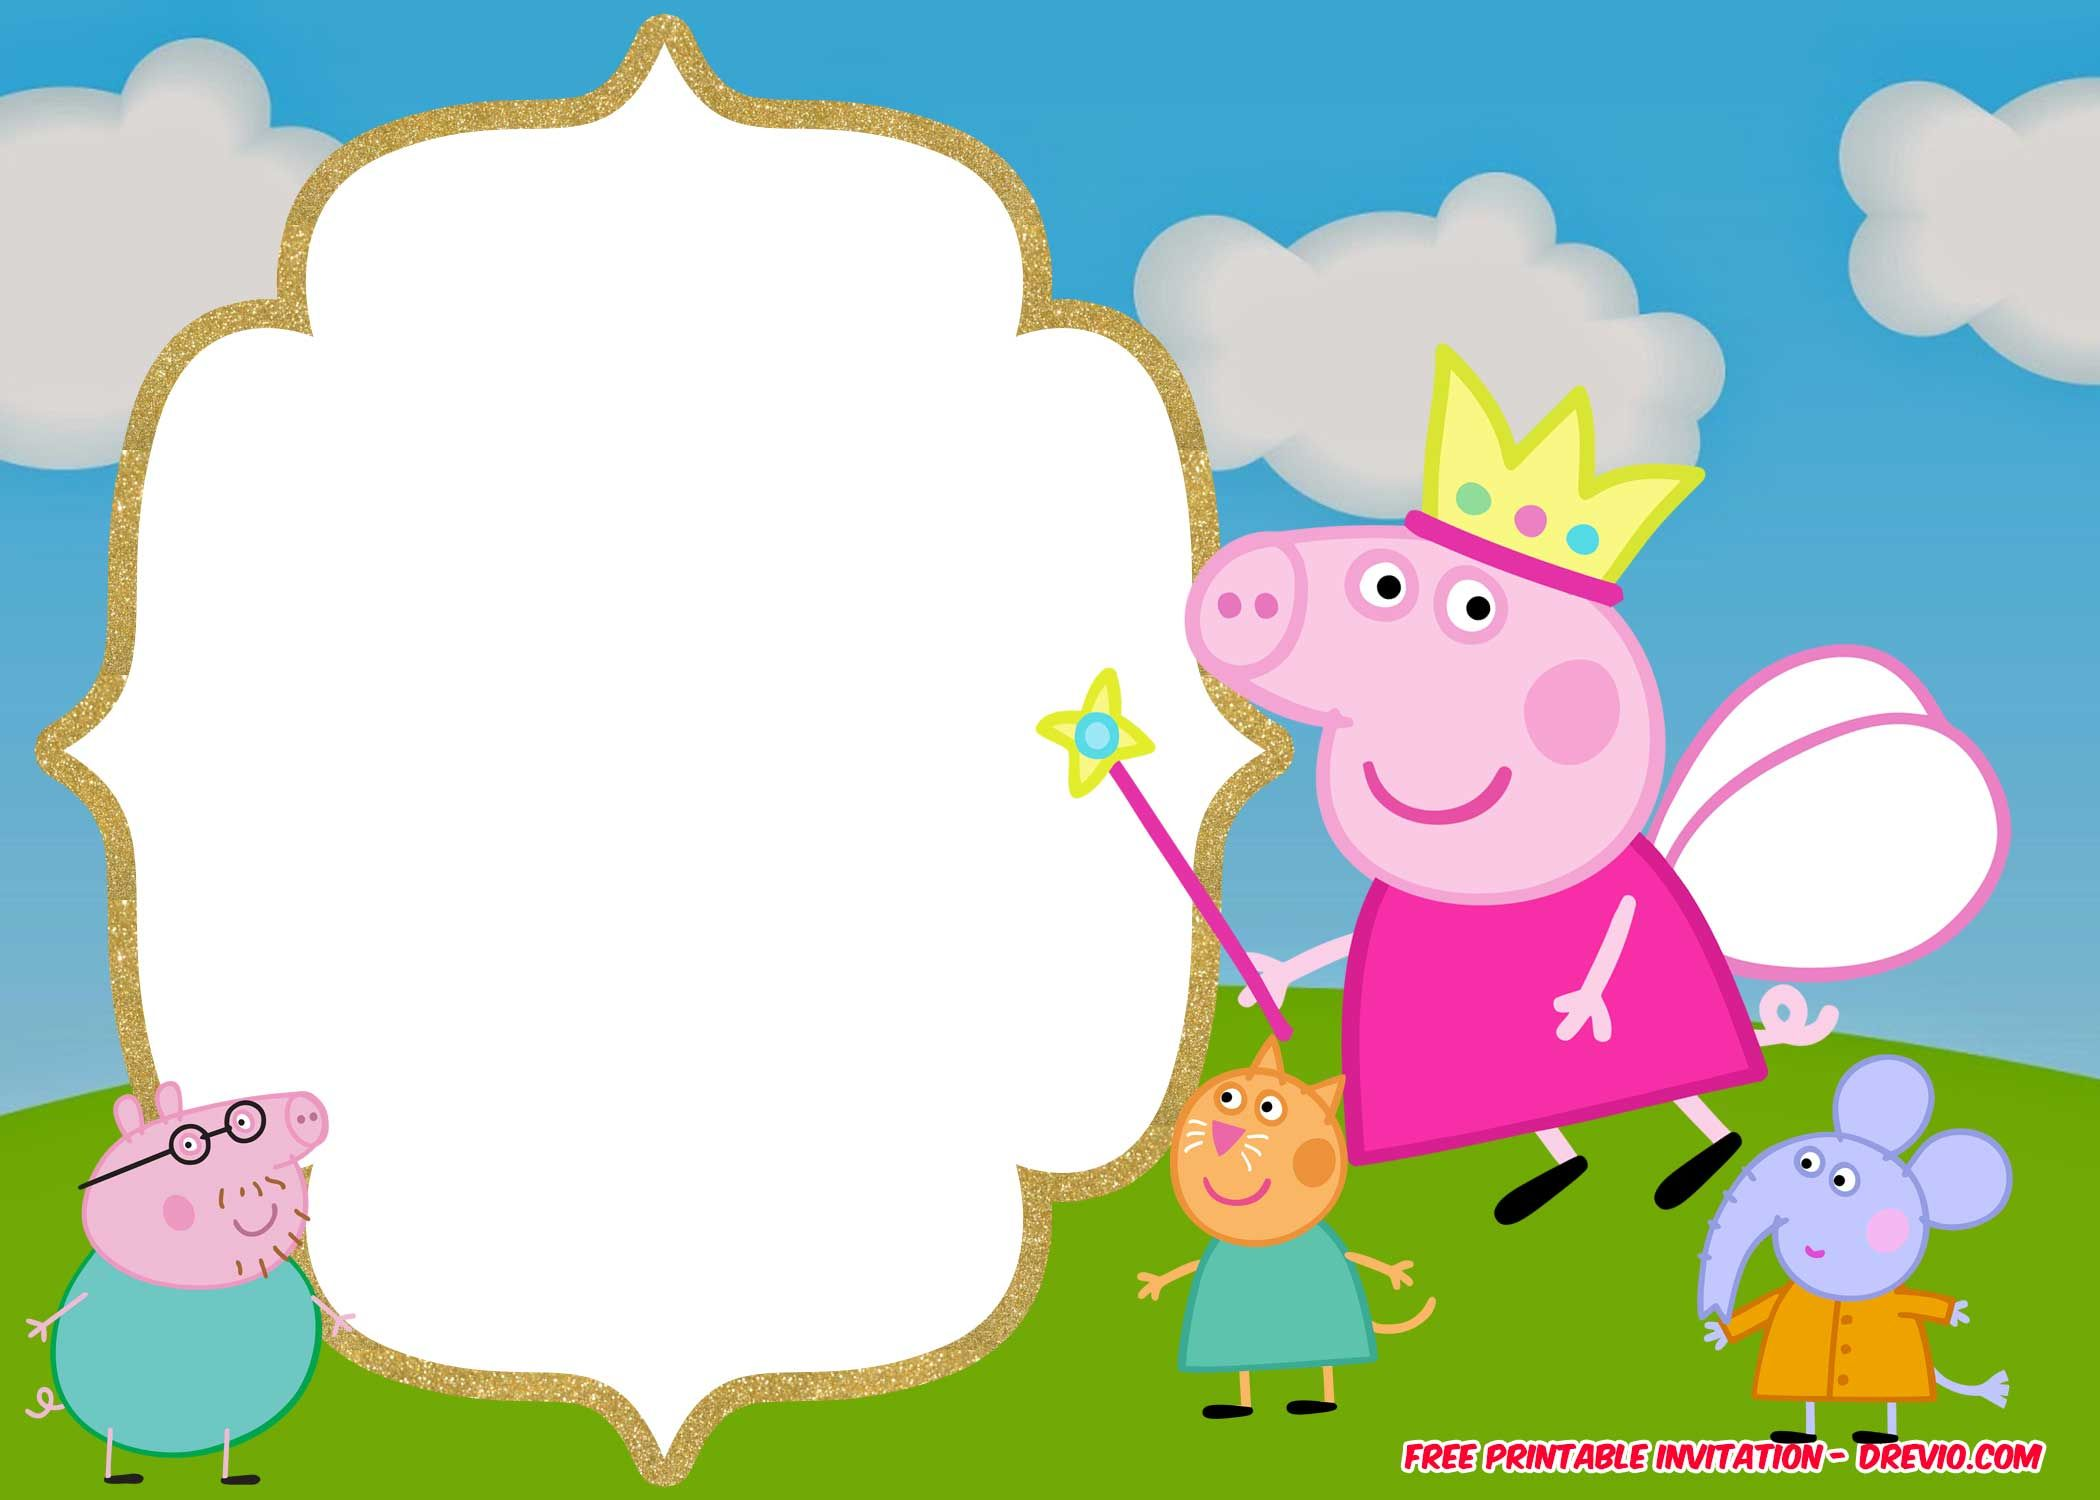 Free Printable Peppa Pig Invitation Template Peppa Pig Invitations Pig Birthday Invitations Peppa Pig Birthday Invitations